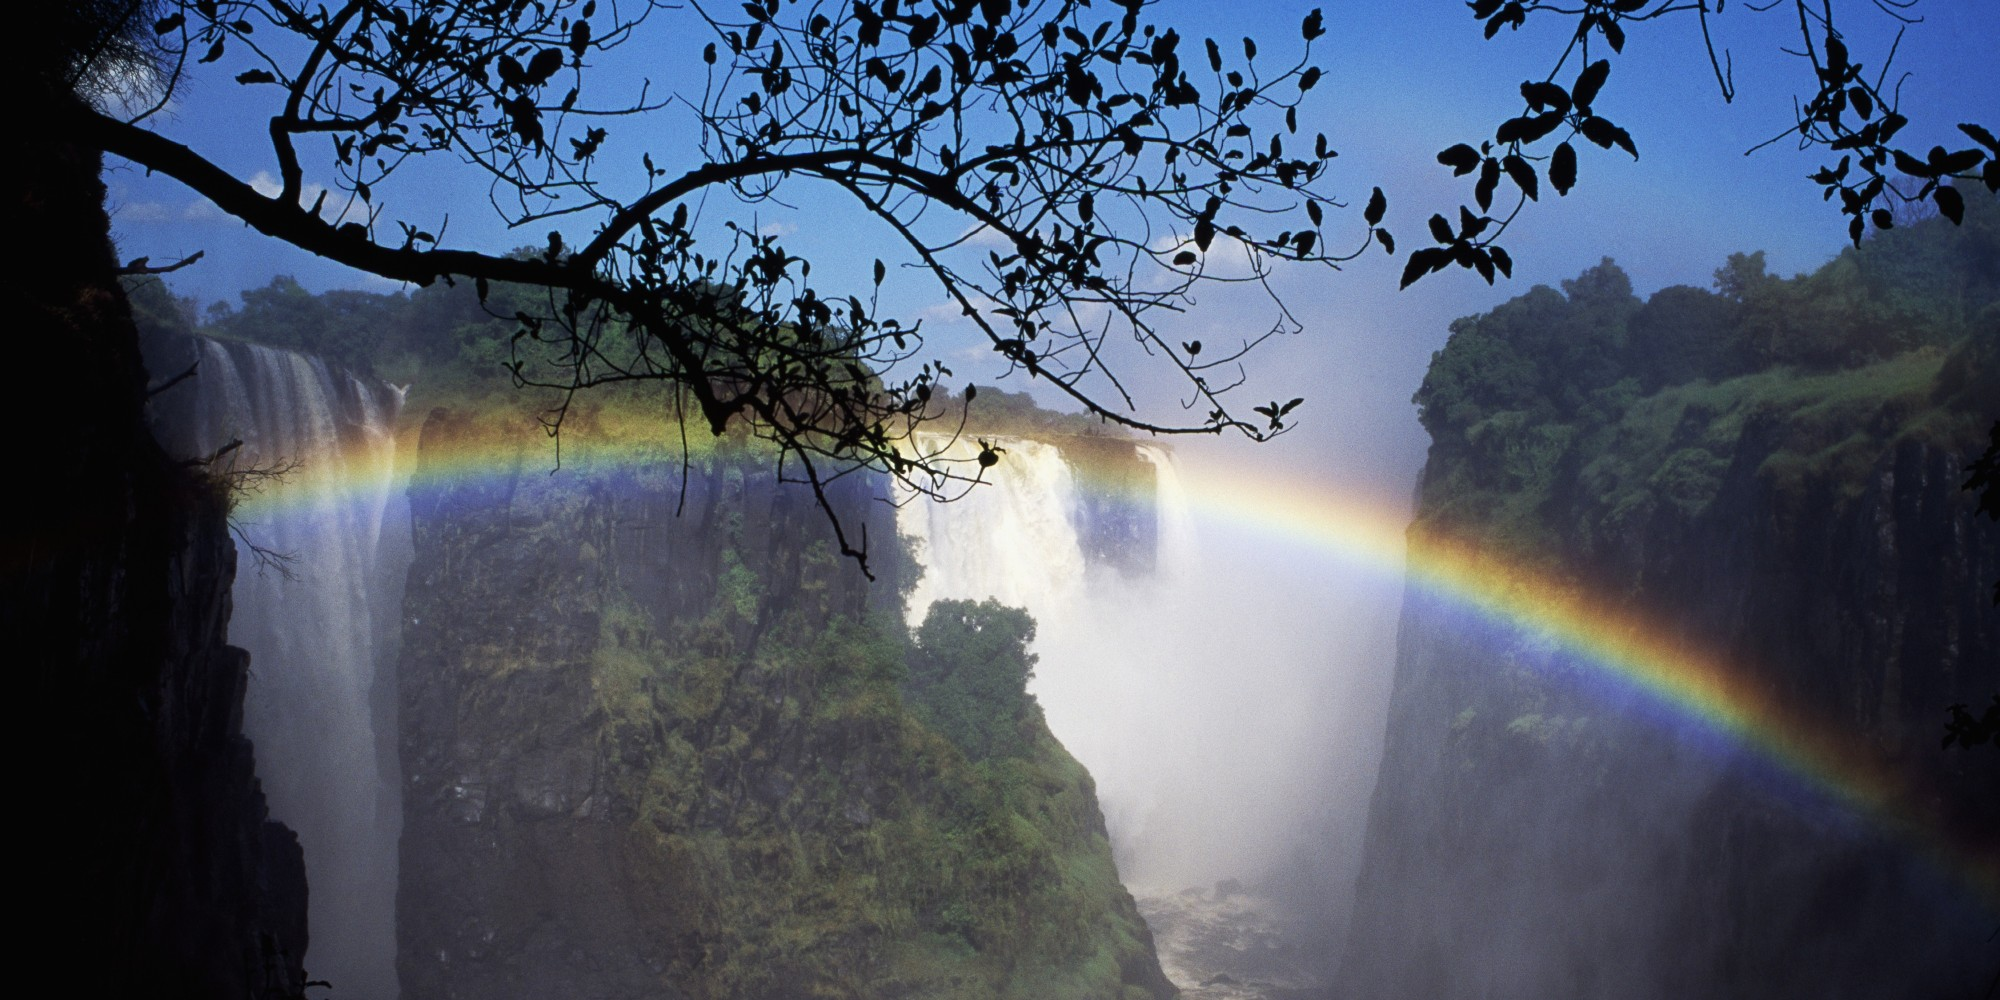 relationship between culture and tourism in zambia the subregion